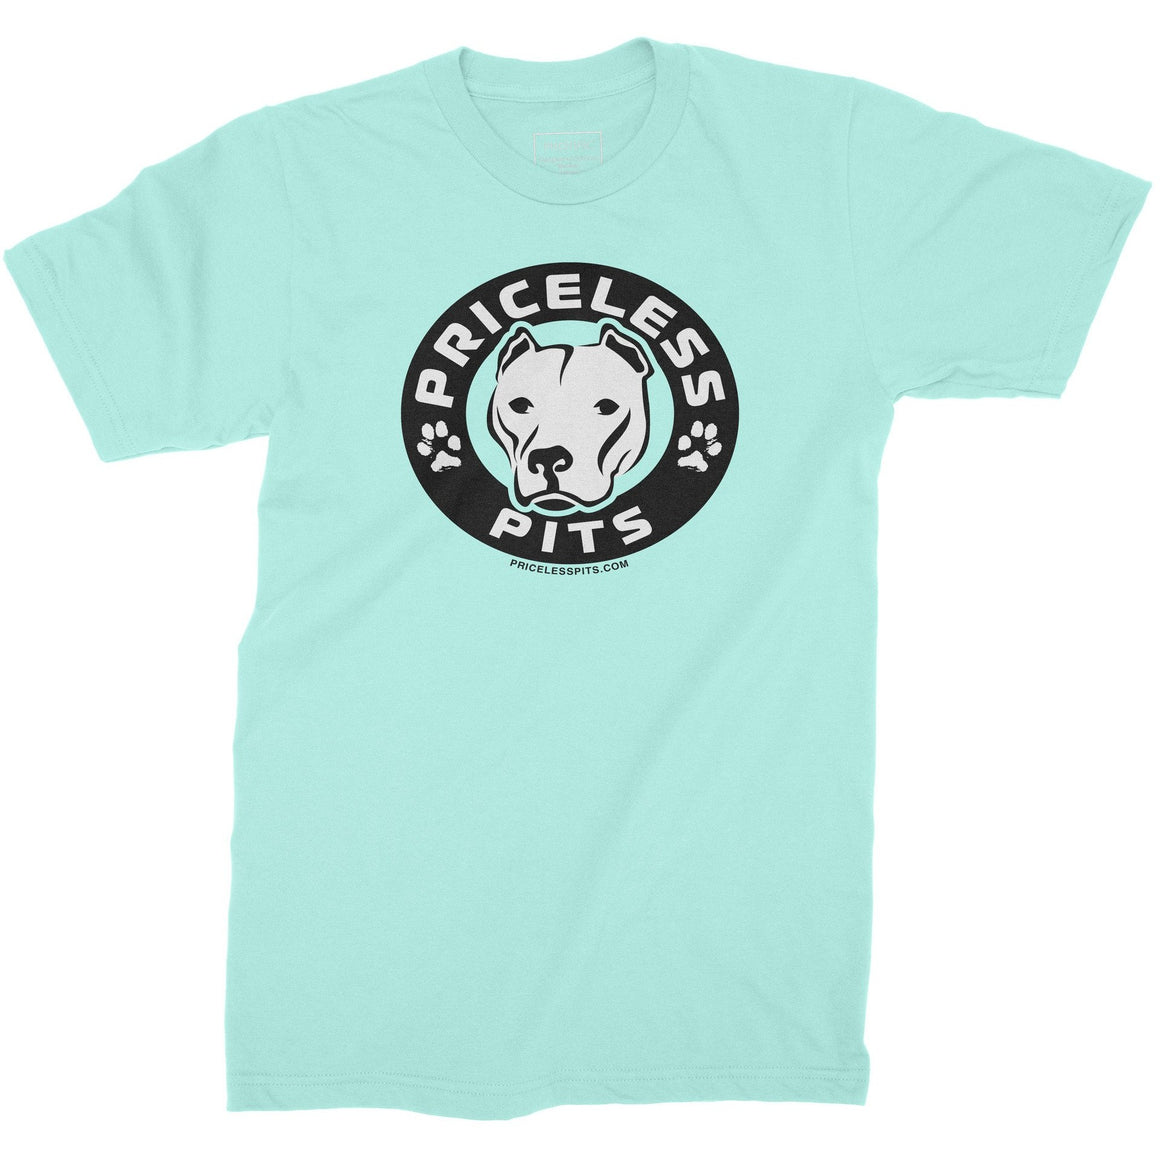 Priceless Pits Logo Light Blue Youth Shirt